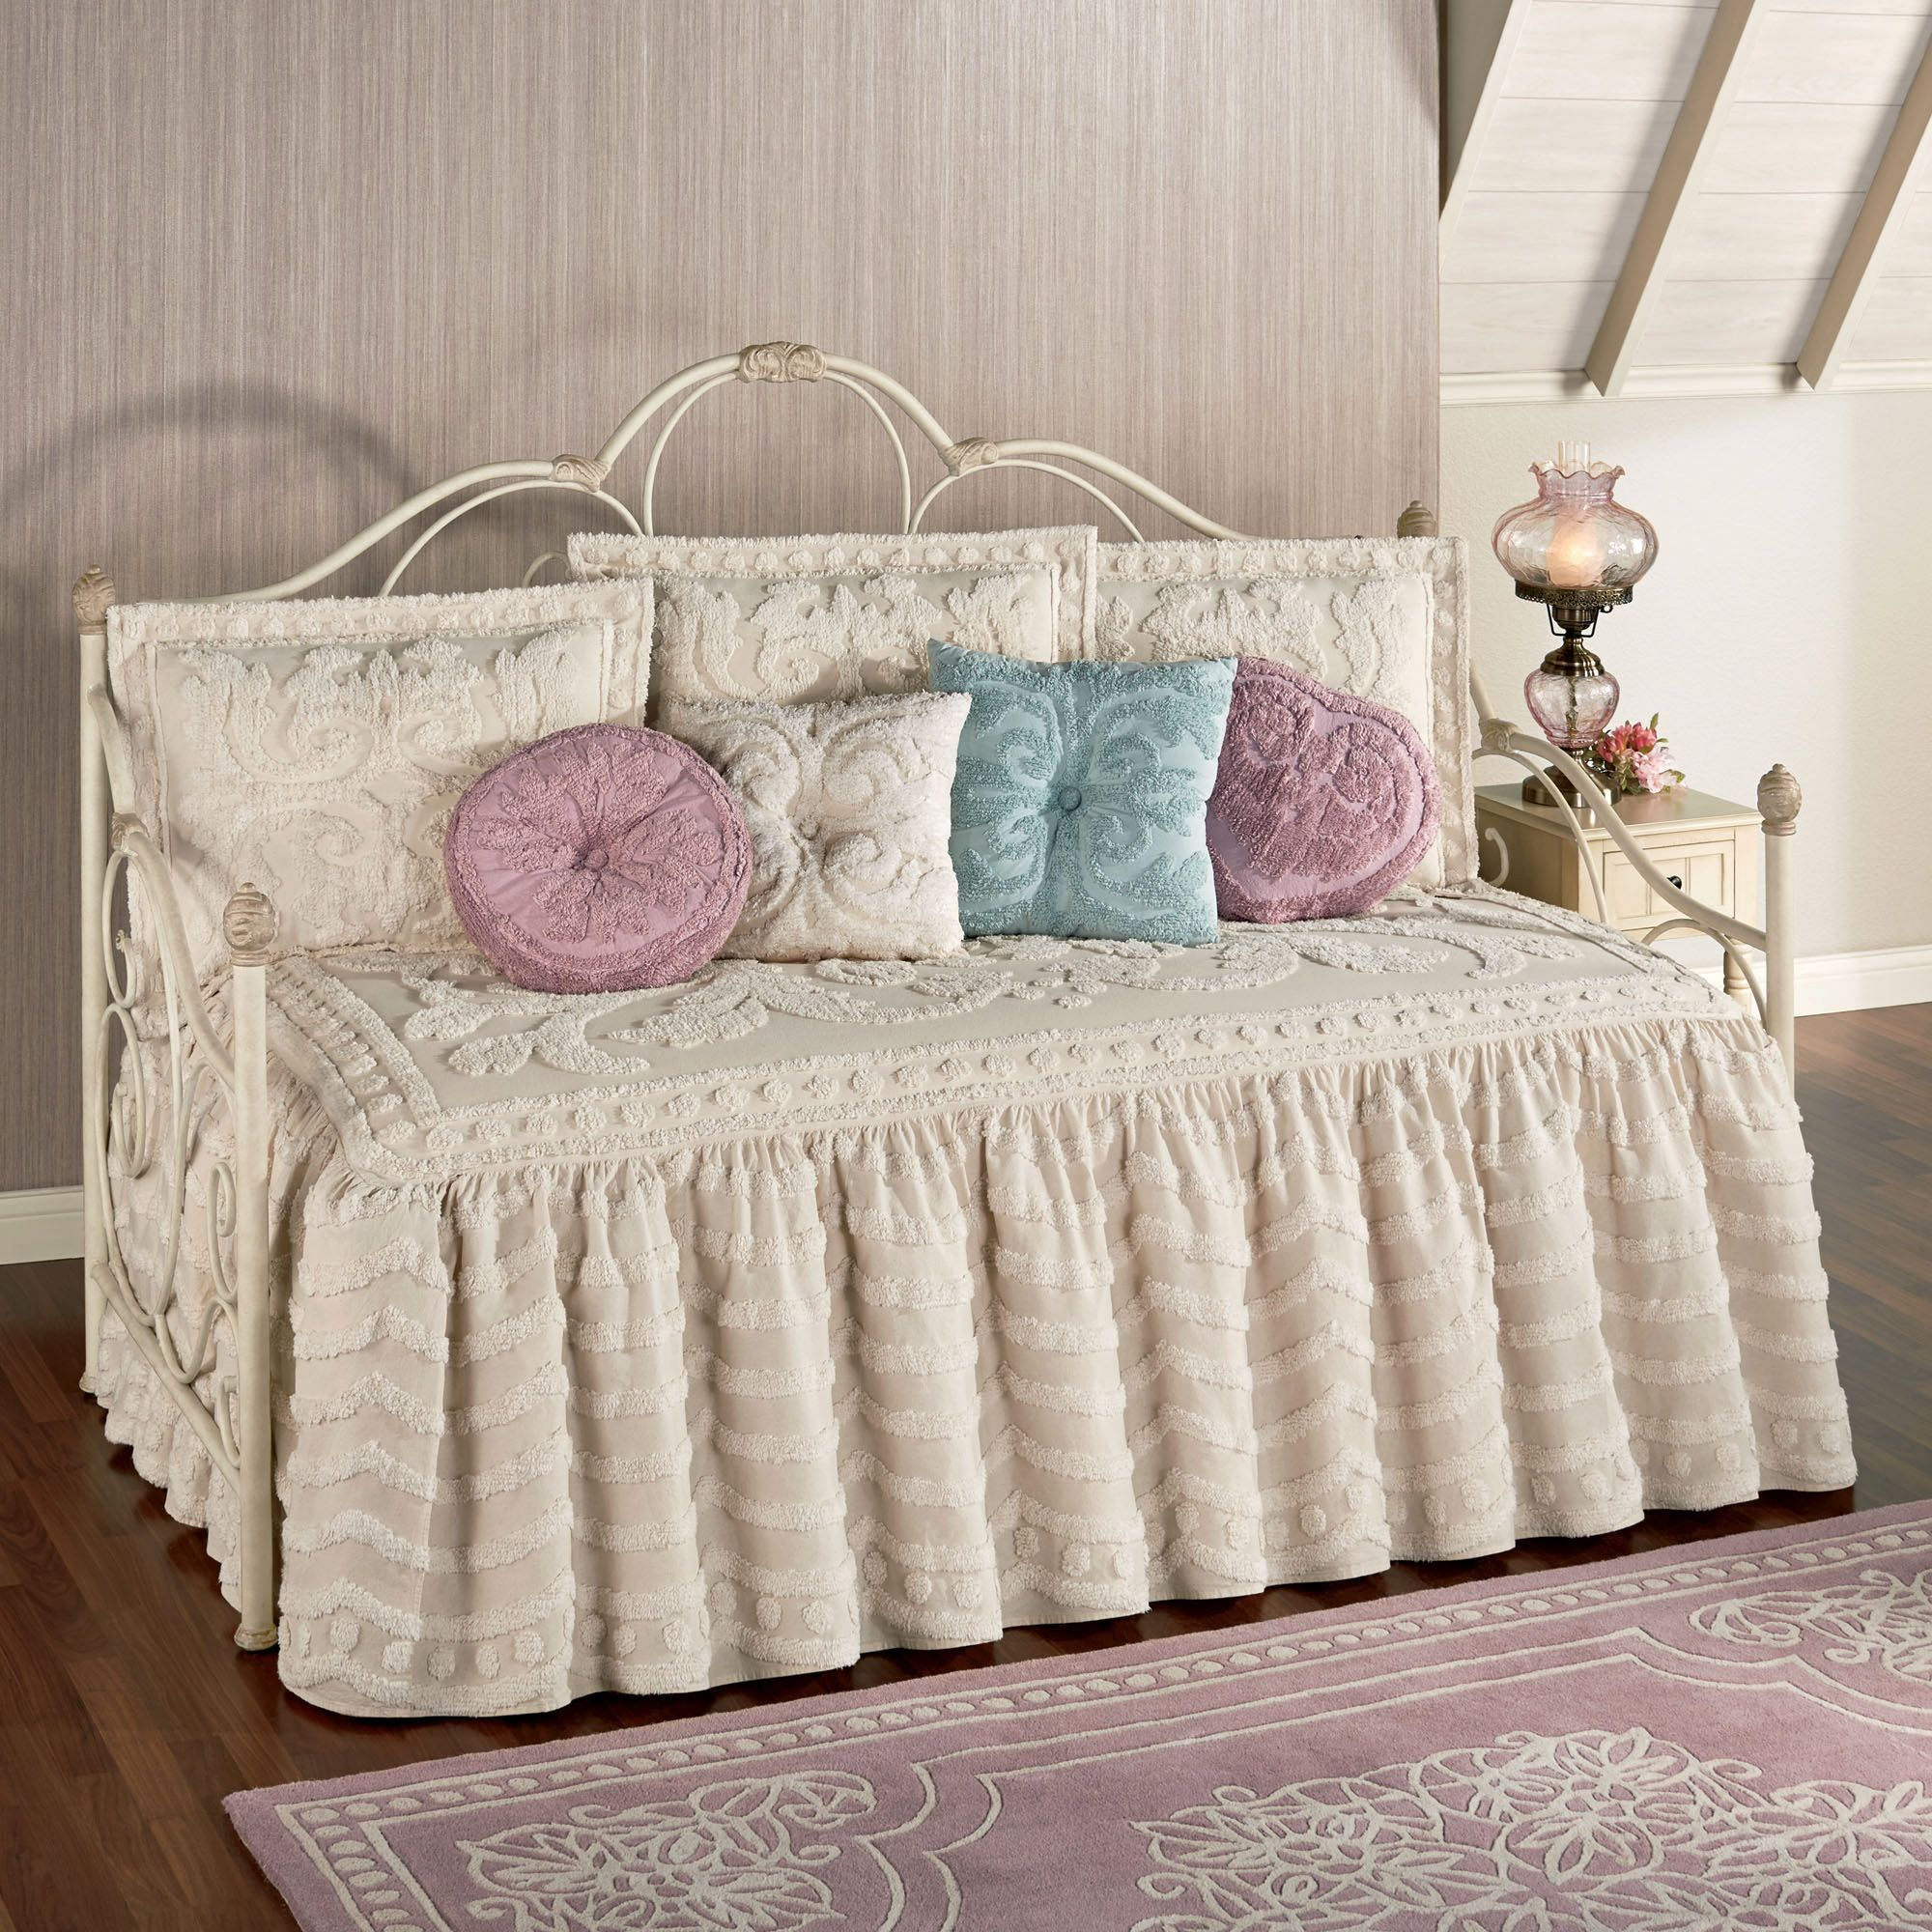 piece bedding twin home amberley cotton com quilt bed laura kitchen daybed dp amazon ashley set sets